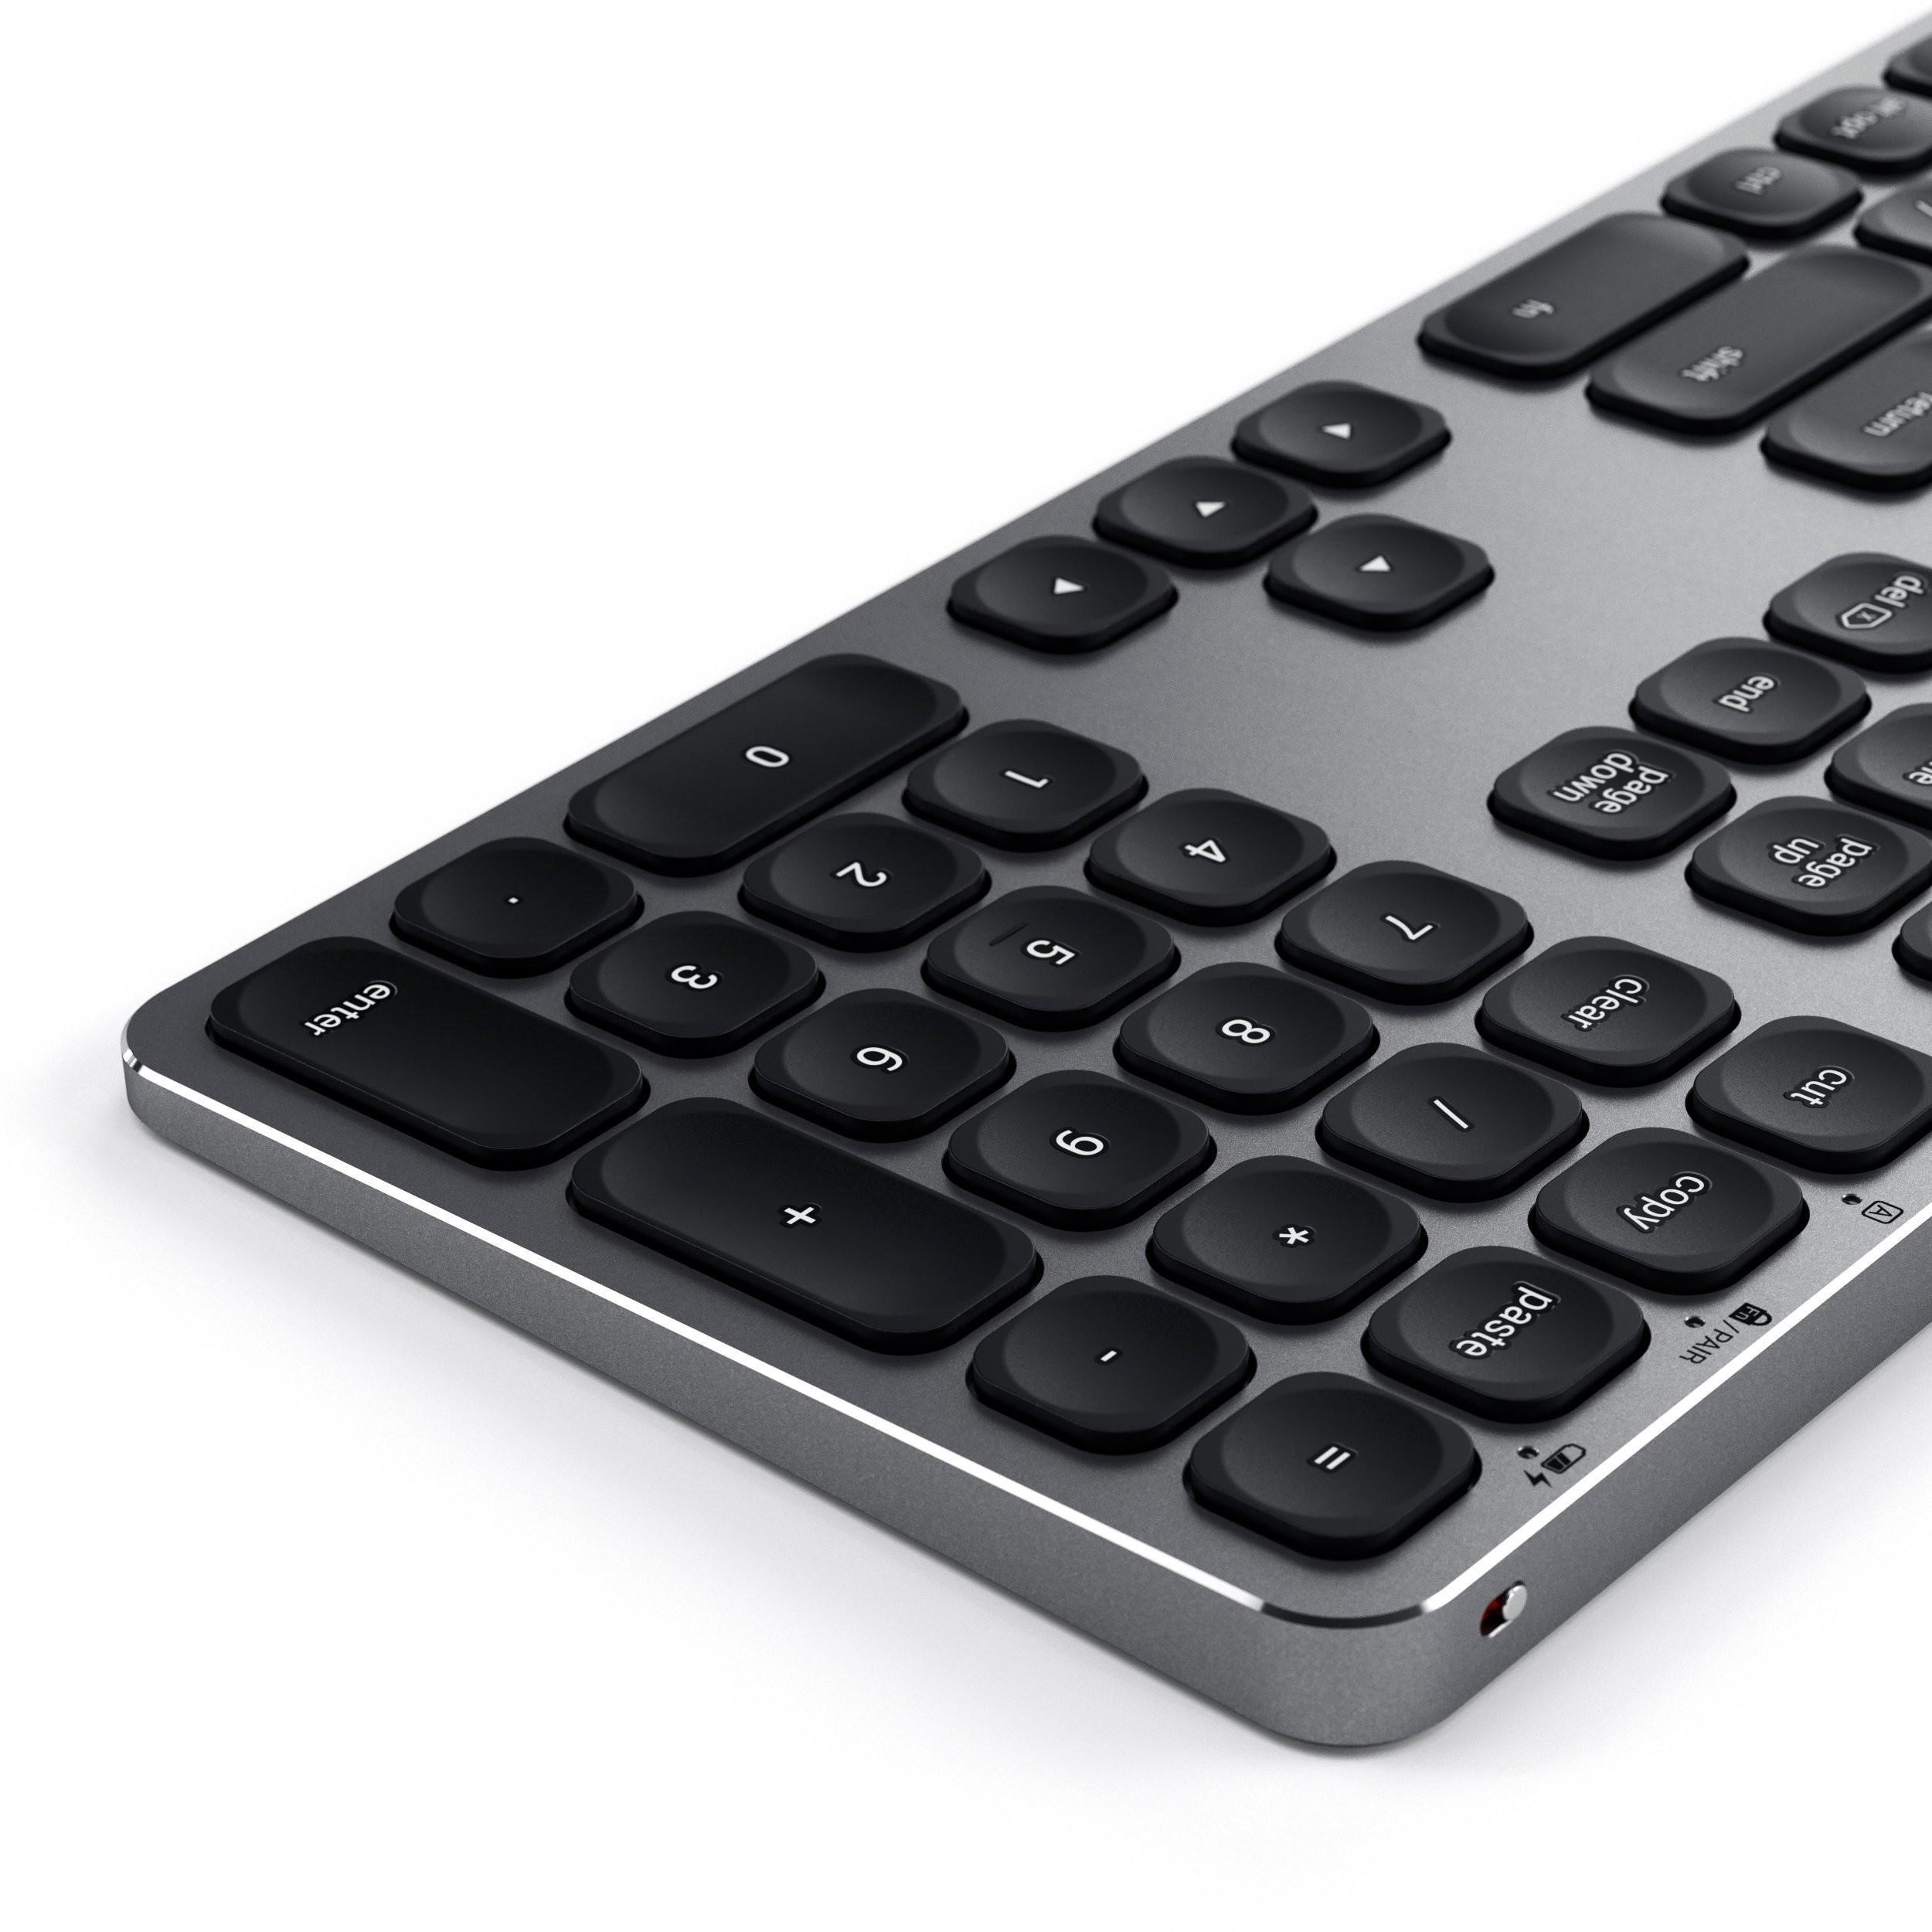 Satechi Wireless Keyboard - Space Grey, ST-AMBKM